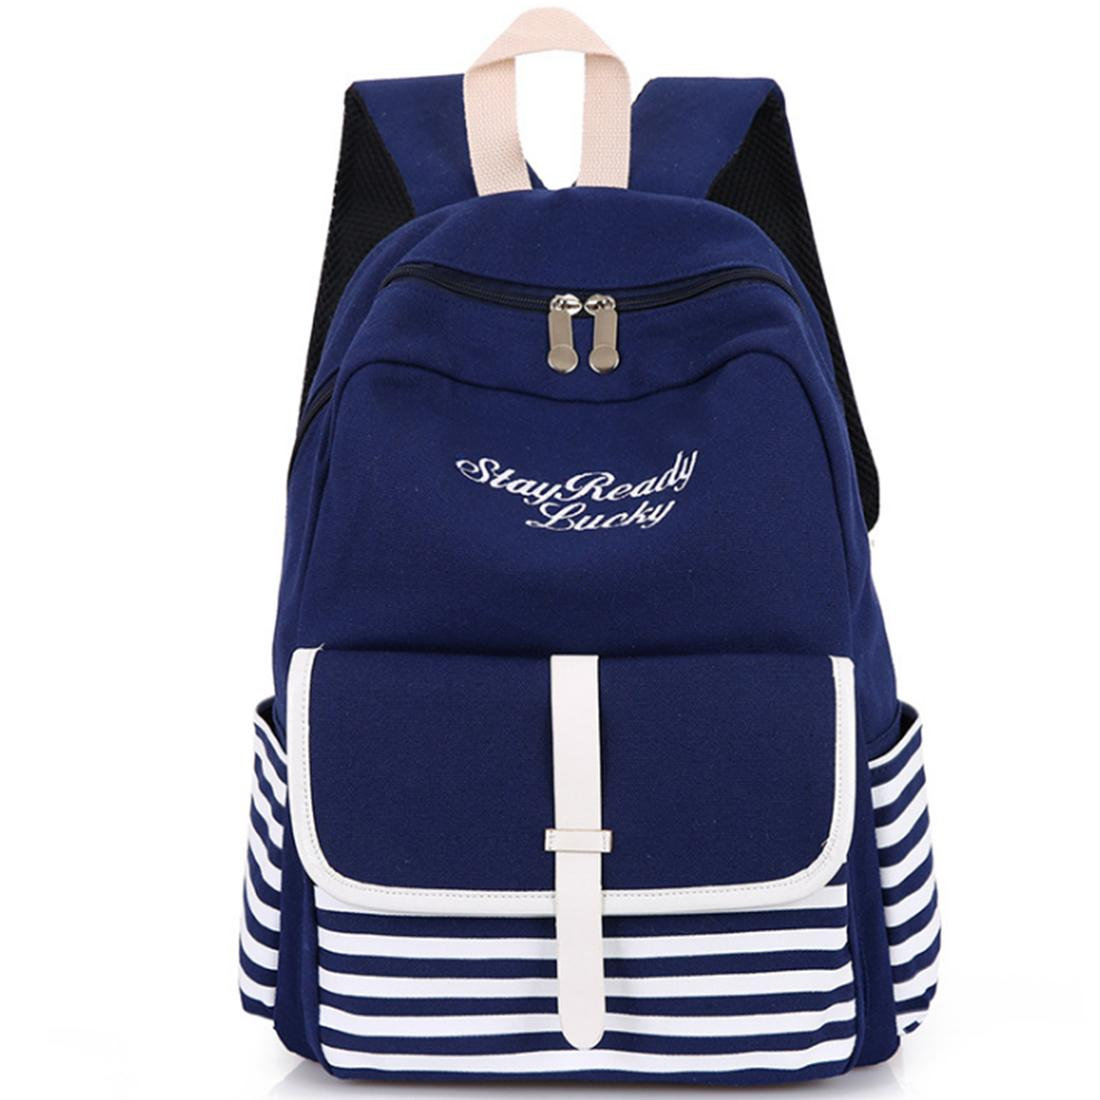 Navy Style Canvas Backpack Casual Travel School Shoulders Bag - Dark Blue + White